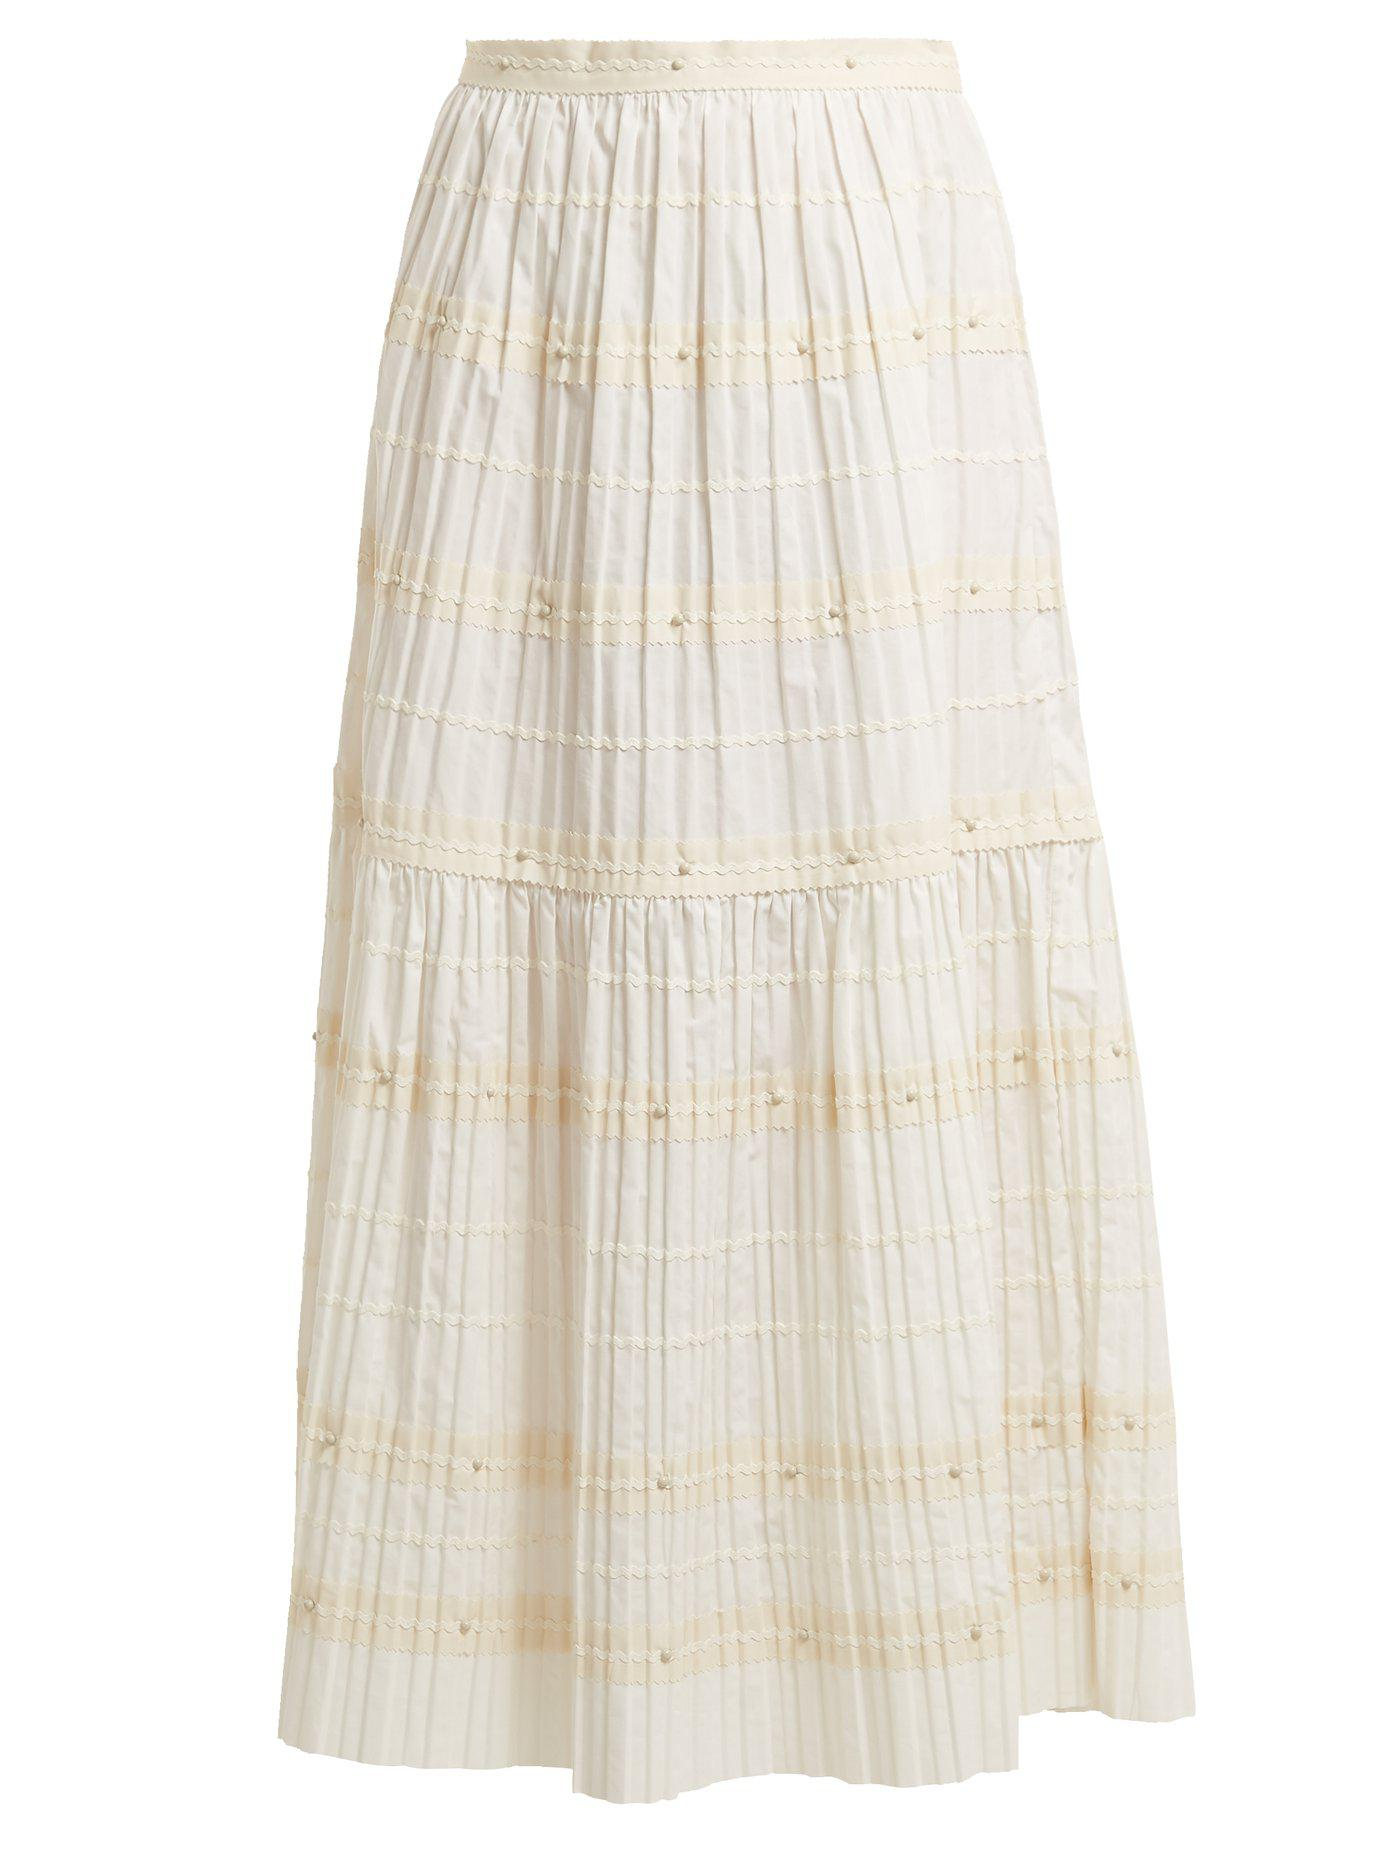 RED Valentino. Women's White Ric-rac Trimmed Pleated Cotton Skirt